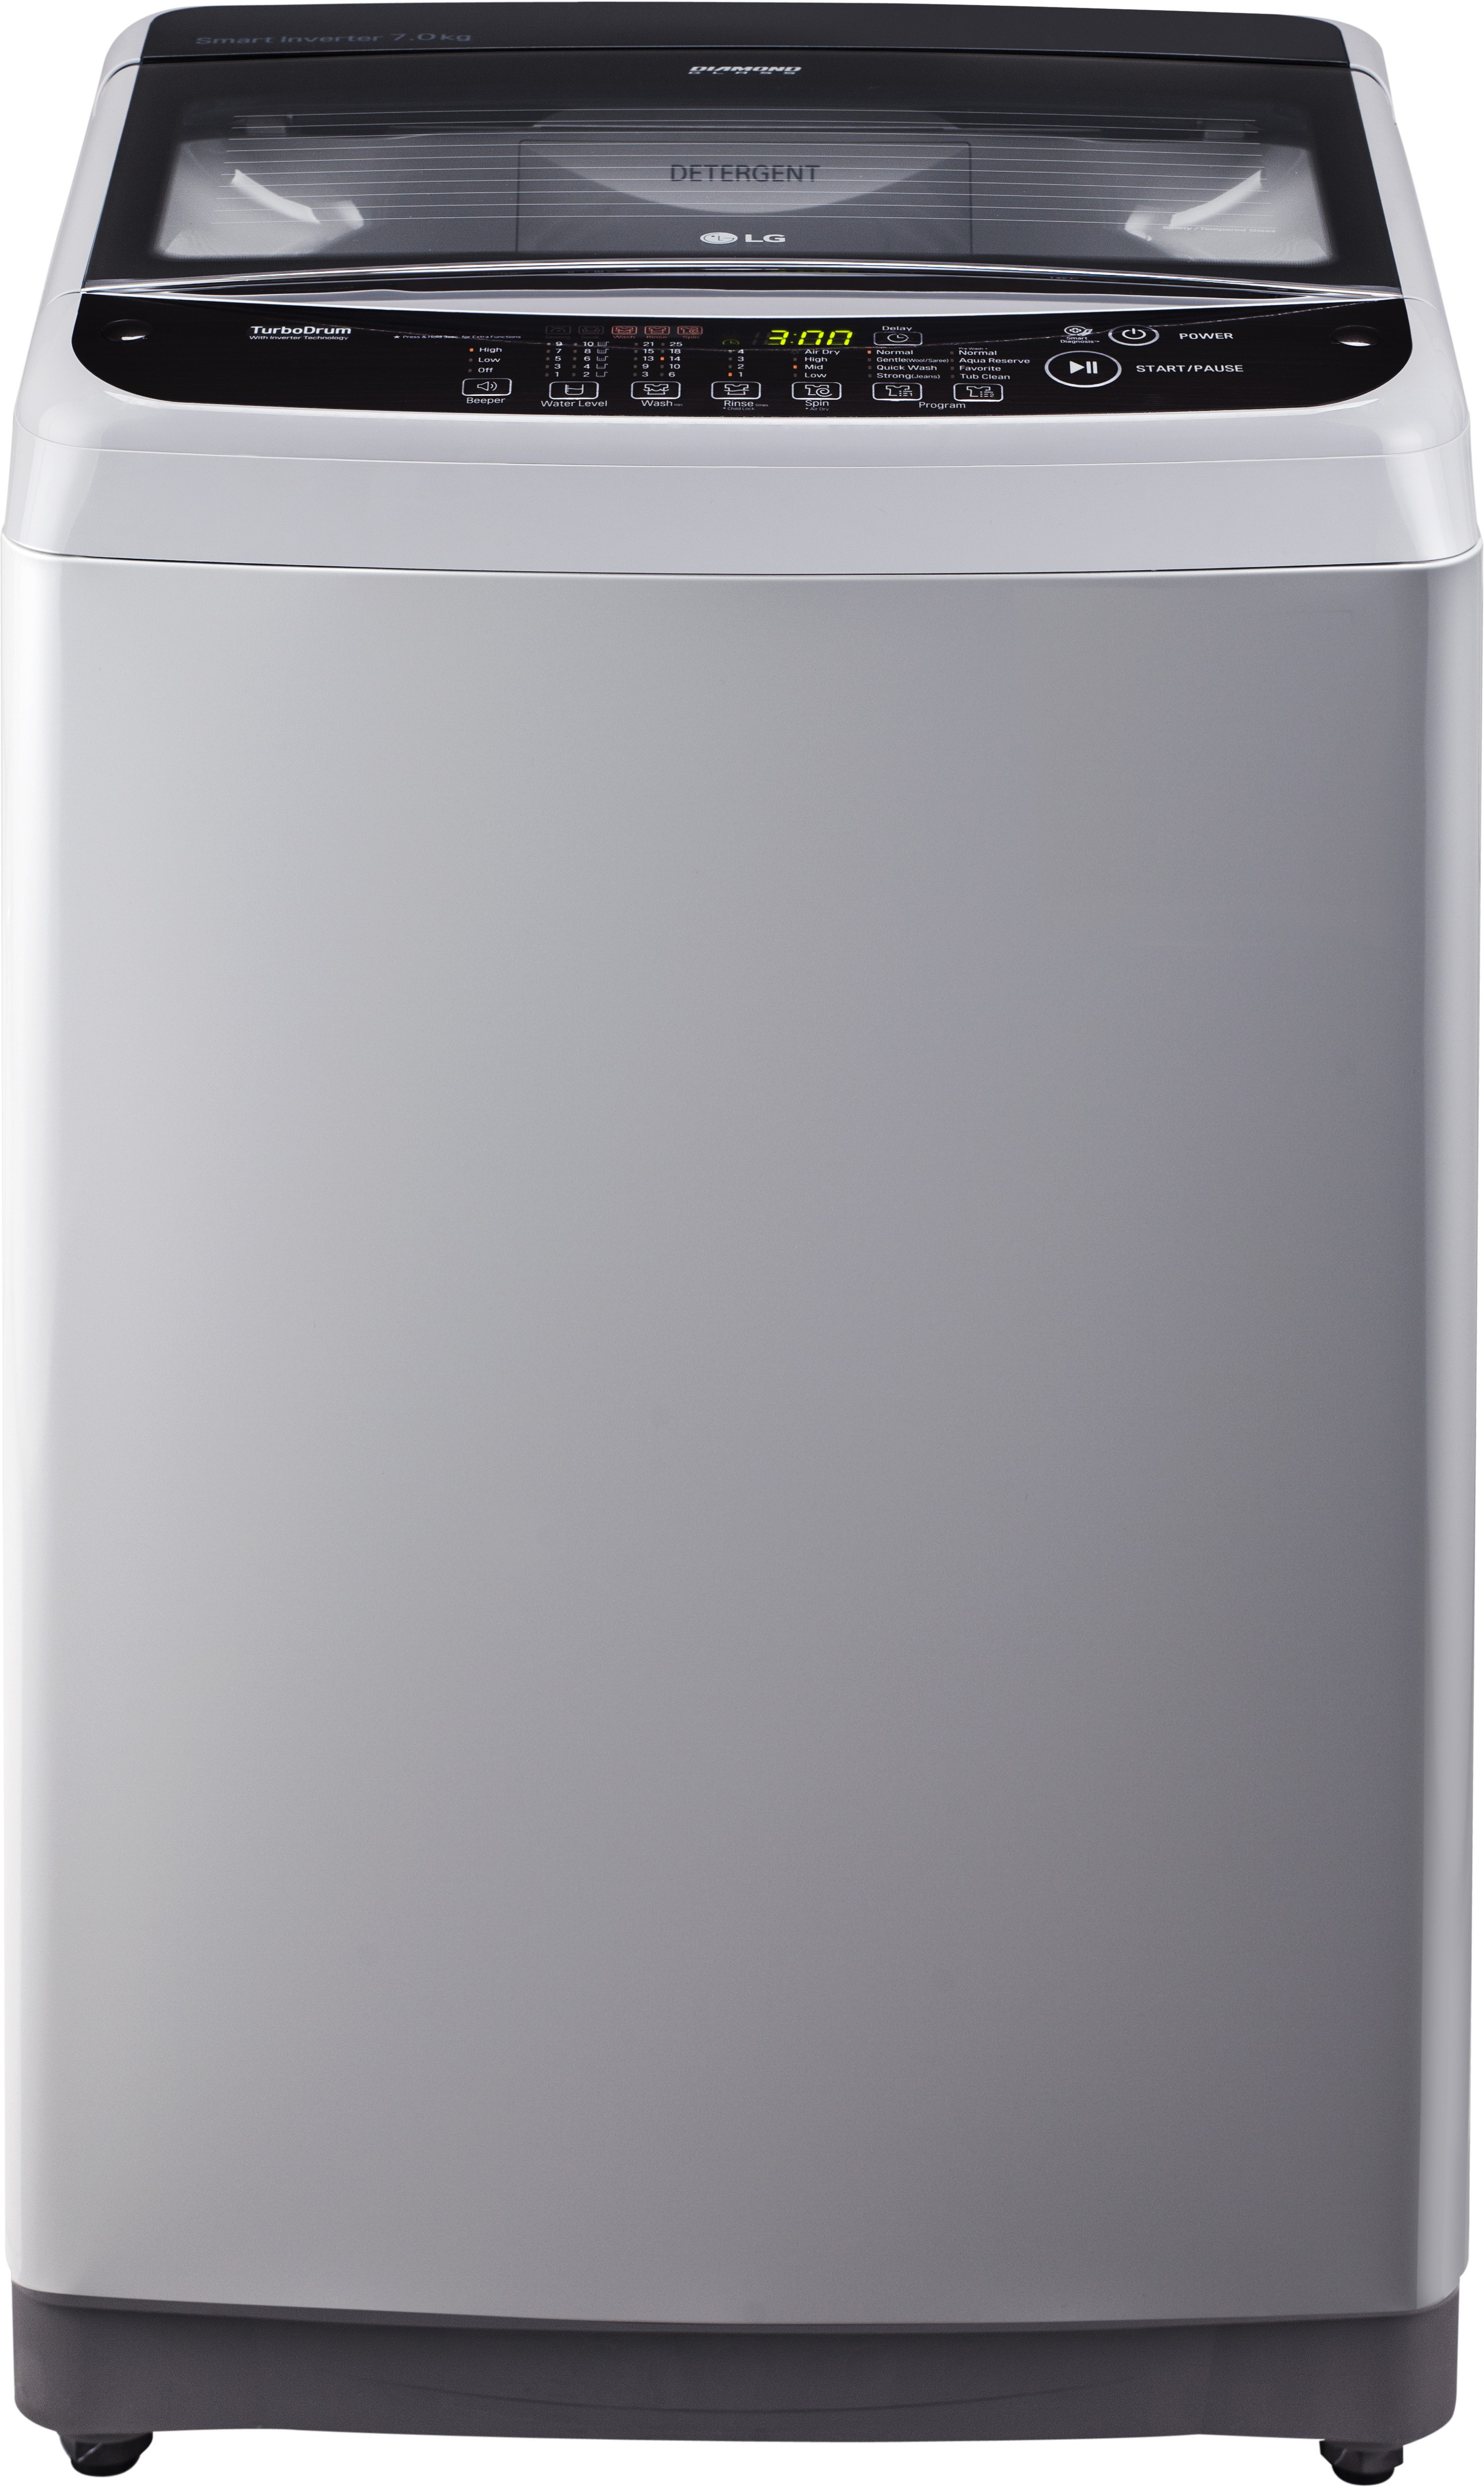 Lg 7 Kg Fully Automatic Top Load Washing Machine T8081nedlj